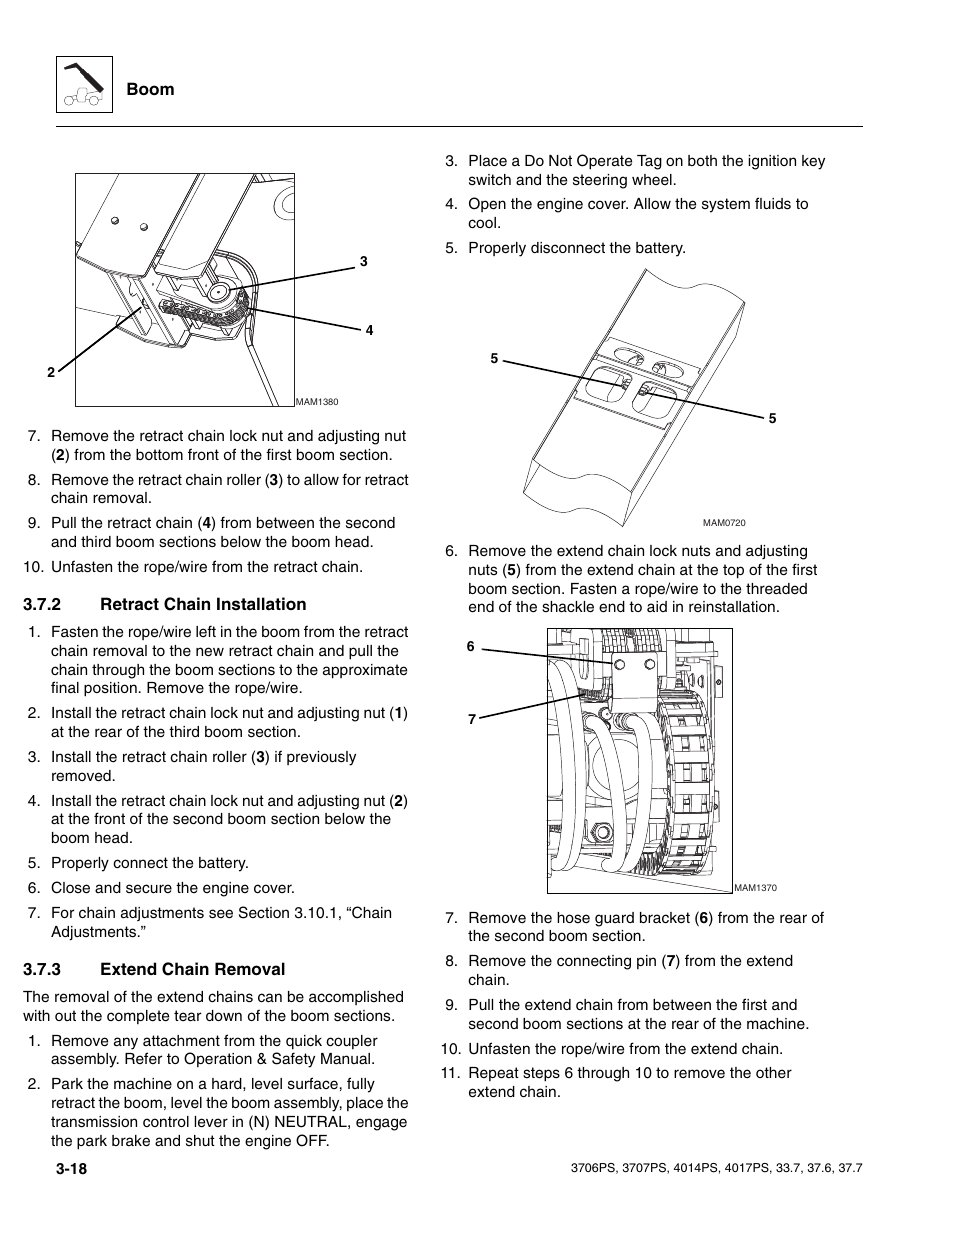 hight resolution of 2 retract chain installation 3 extend chain removal retract chain installation jlg 4017ps service manual user manual page 56 264